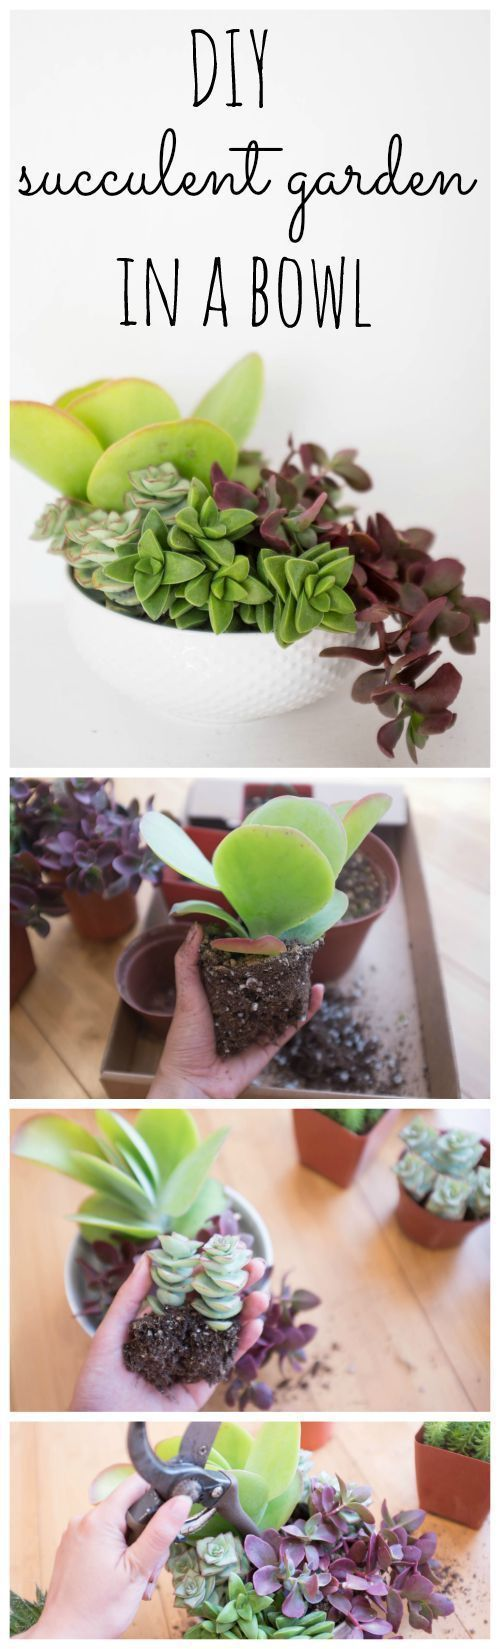 25 best ideas about succulent bowls on pinterest succulent garden diy indoor terrarium and - Best indoor succulents ...